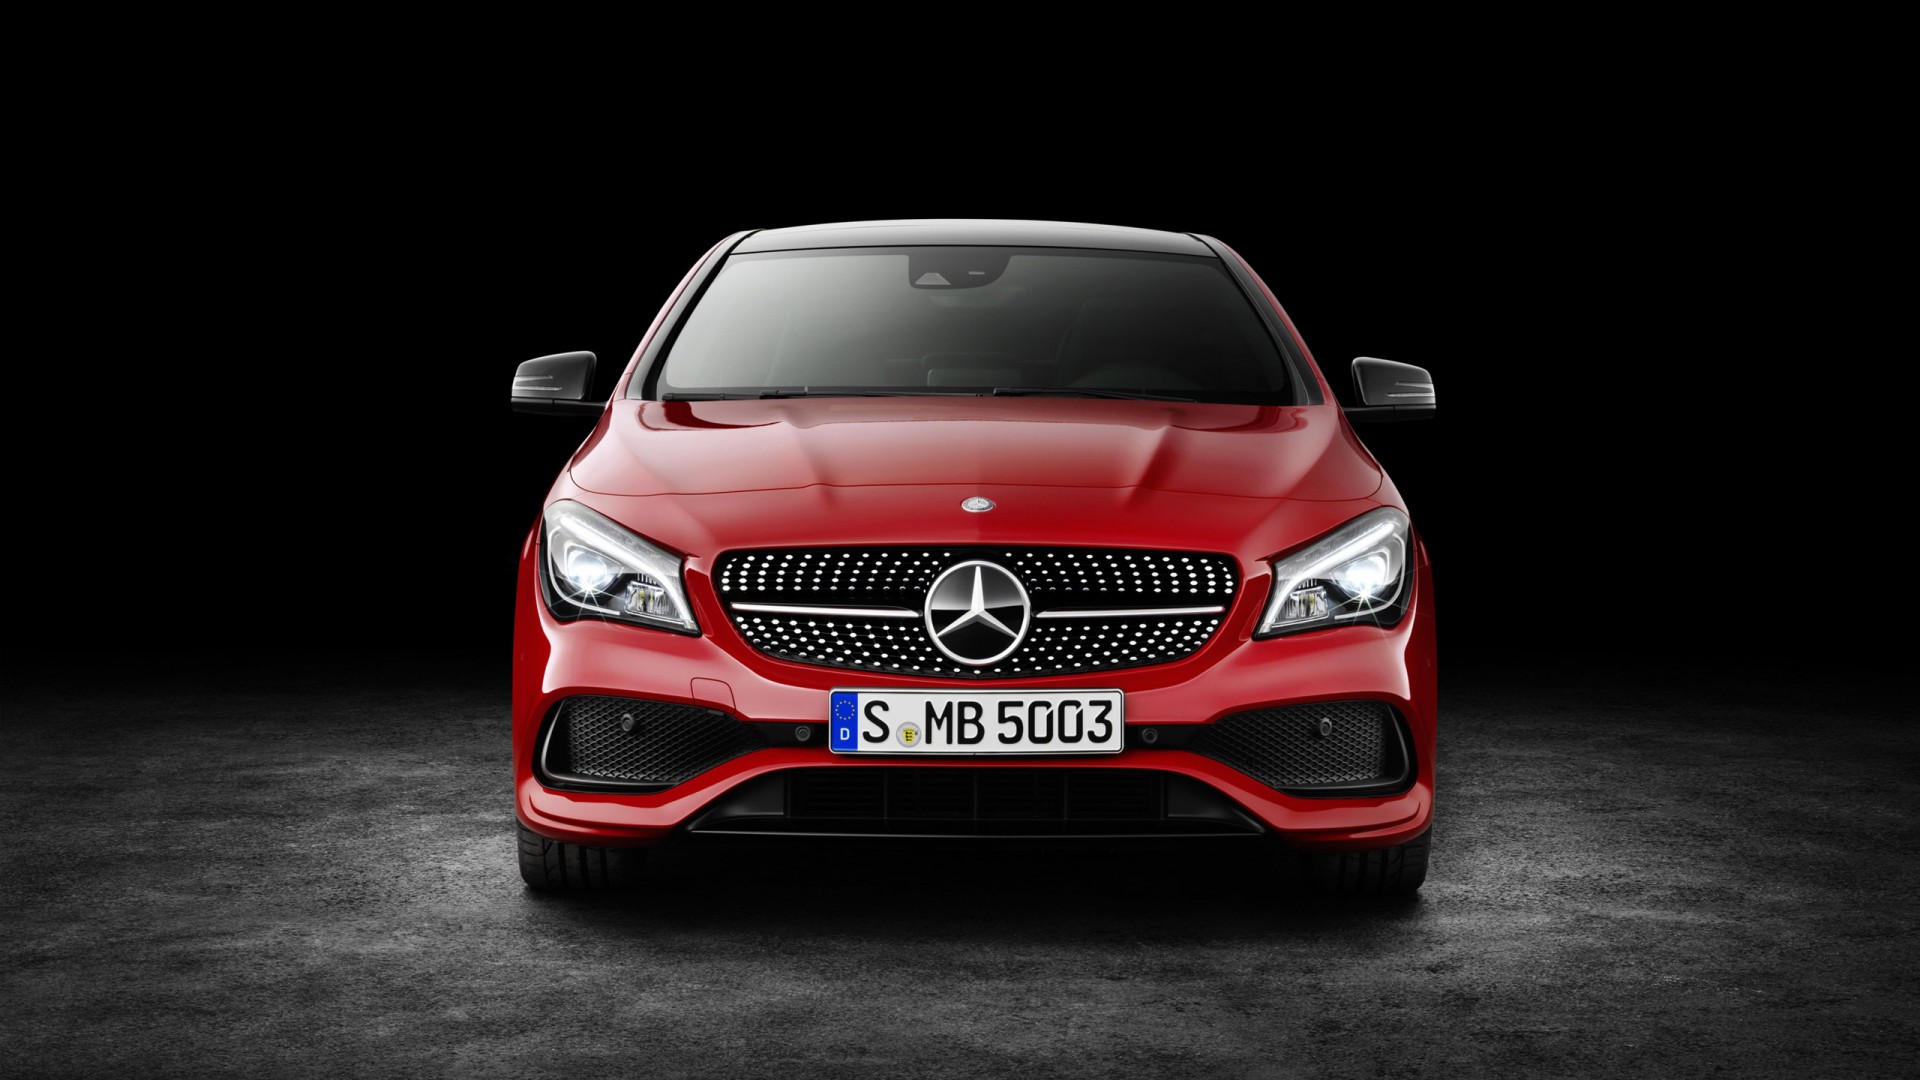 2017 mercedes benz cla wallpaper hd car wallpapers id 6343 for Mercedes benz cla coupe 2017